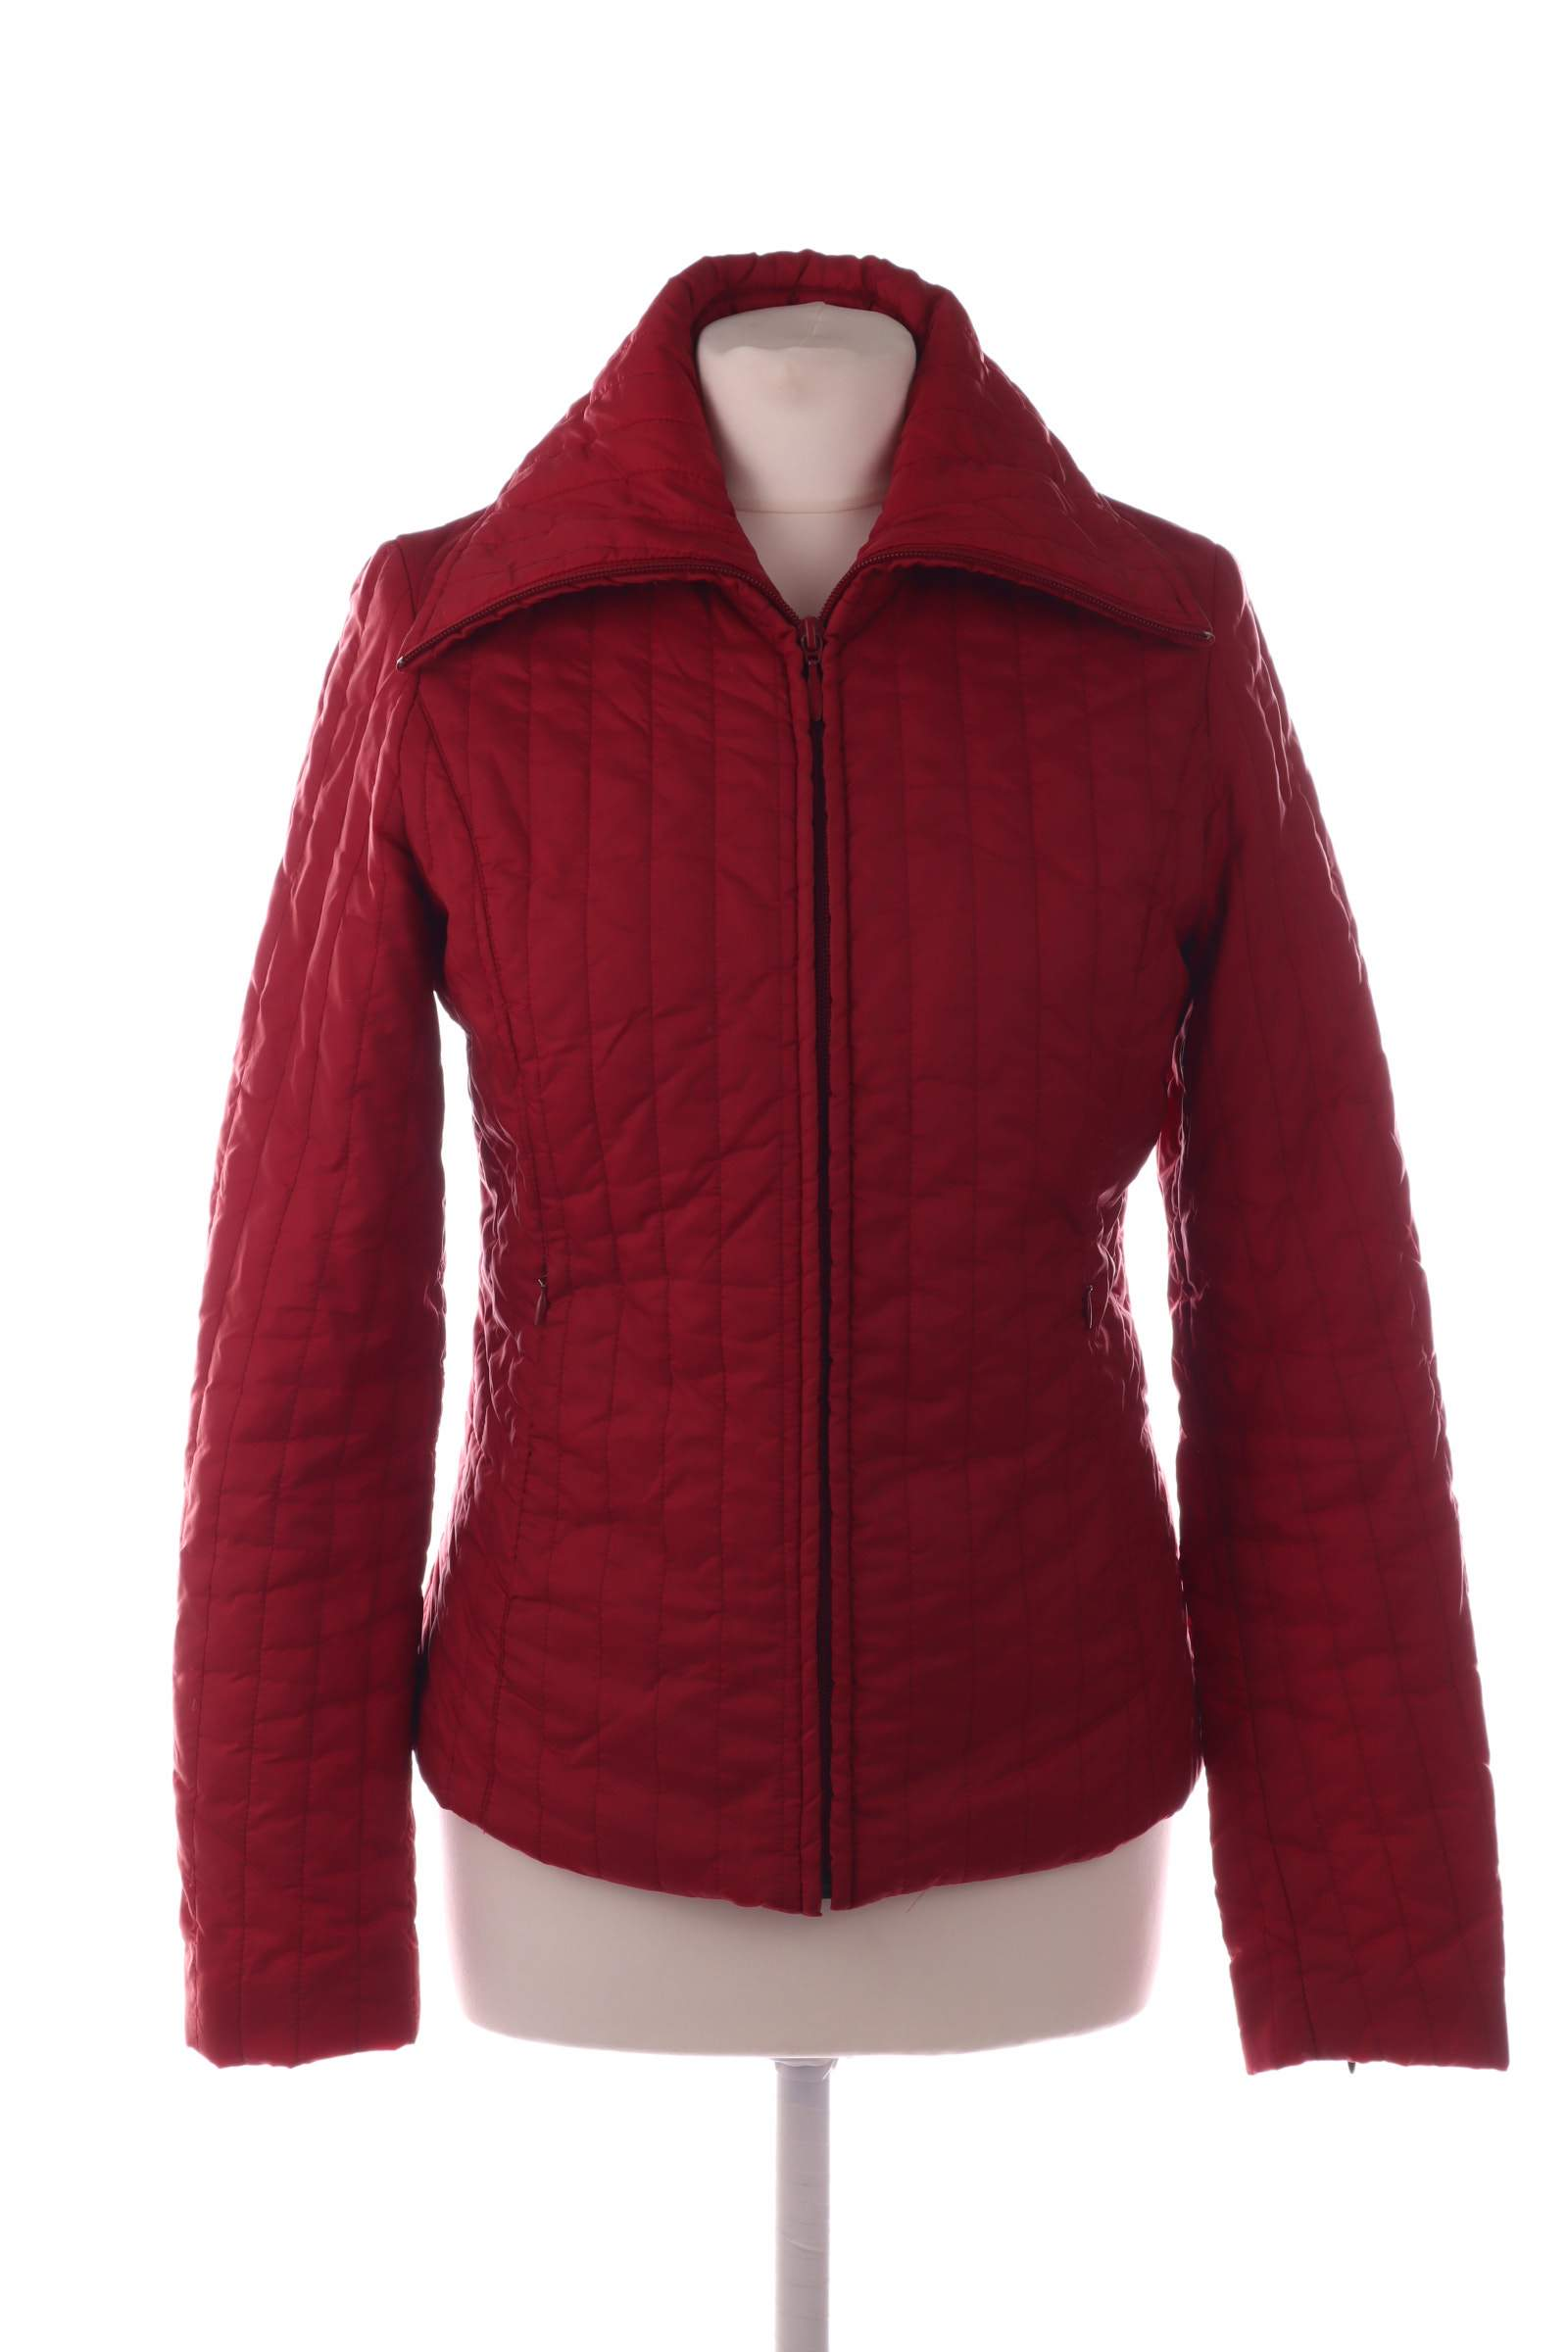 H&M Red Coat - upty.store